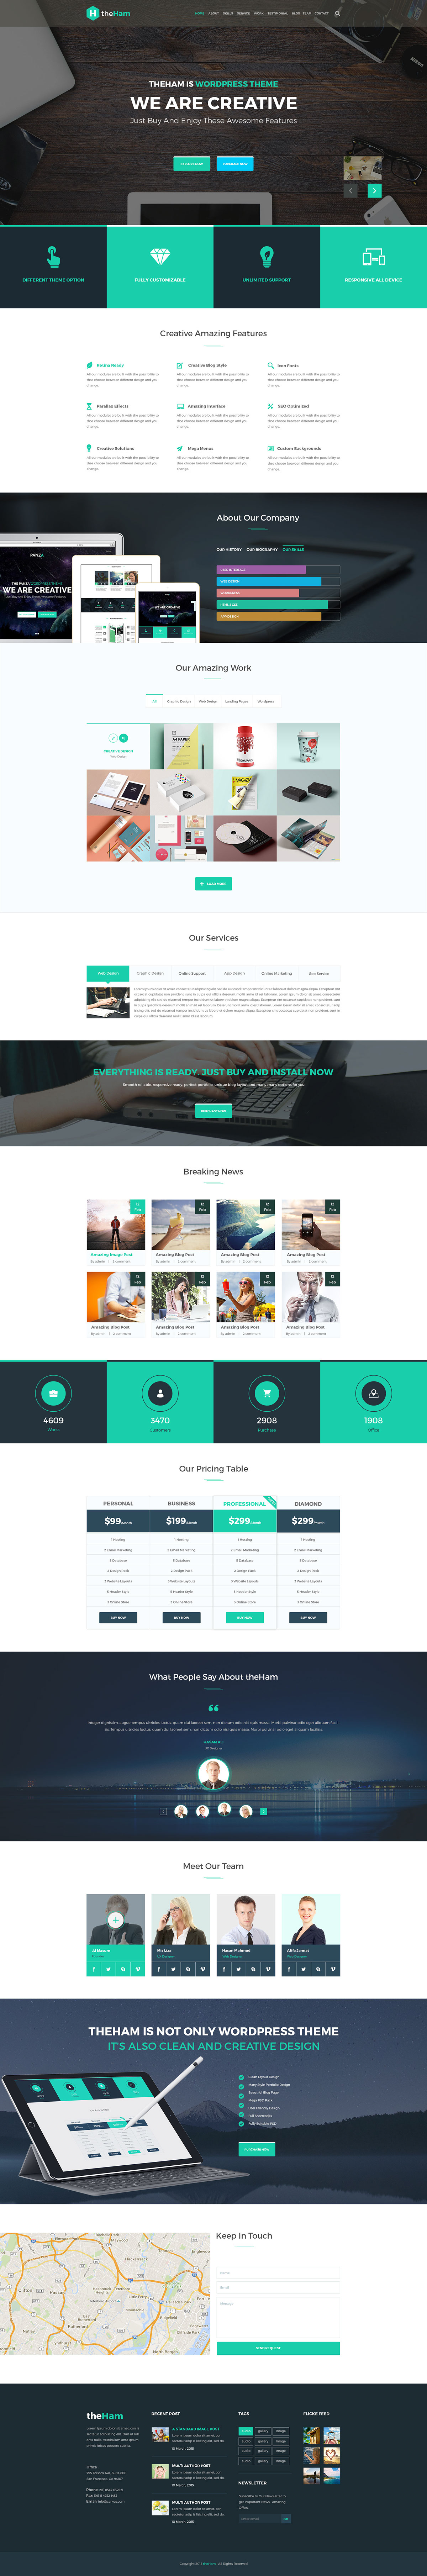 TheHam - Creative Landing Page PSD Template